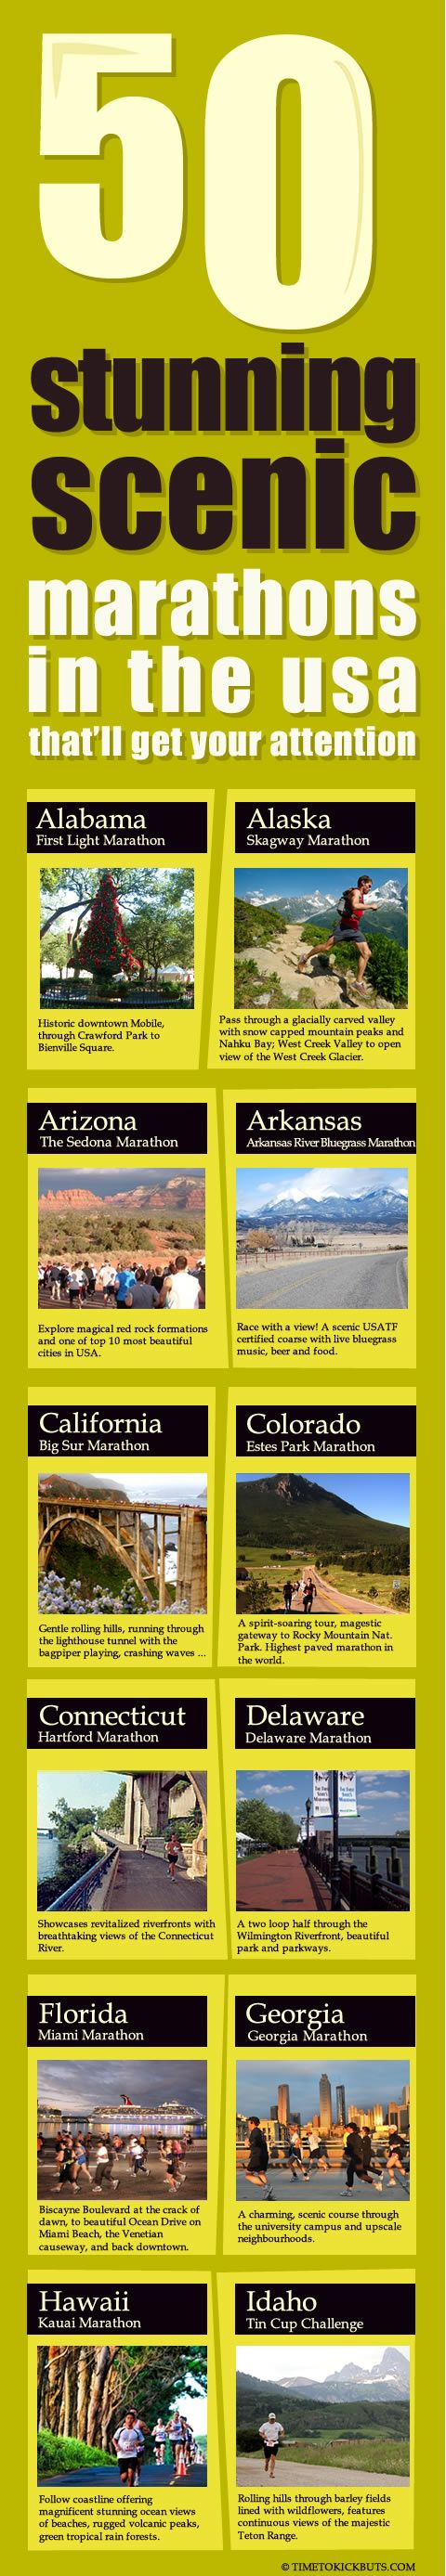 Fit2Flex*: 50 Marathons to put on your Bucketlist via @CarissaAnneB #fitnessbucketlist #fitfluential